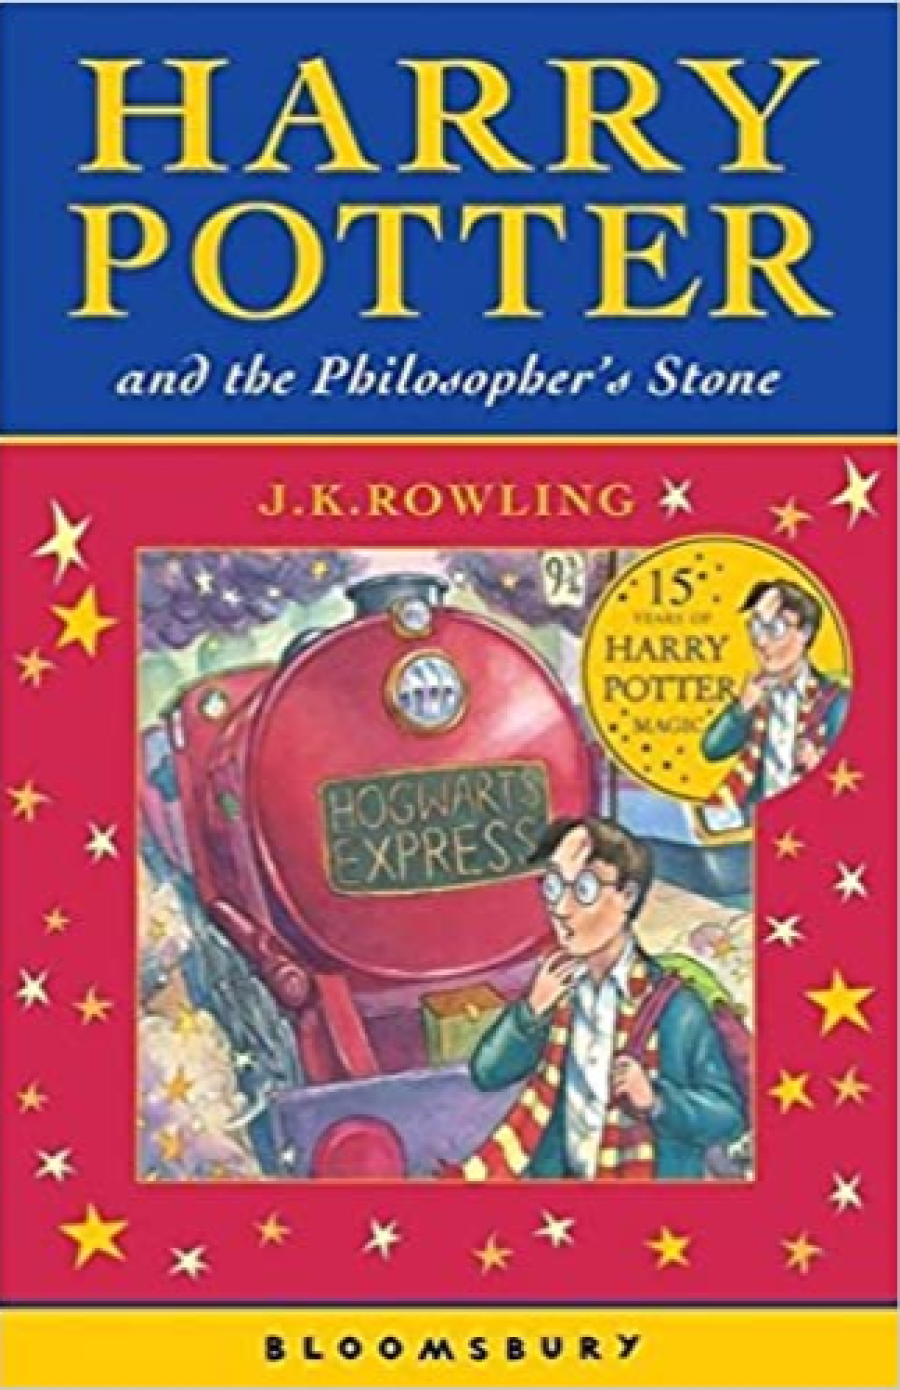 Harry Potter & The Philosopher's Stone by J.K.Rowling